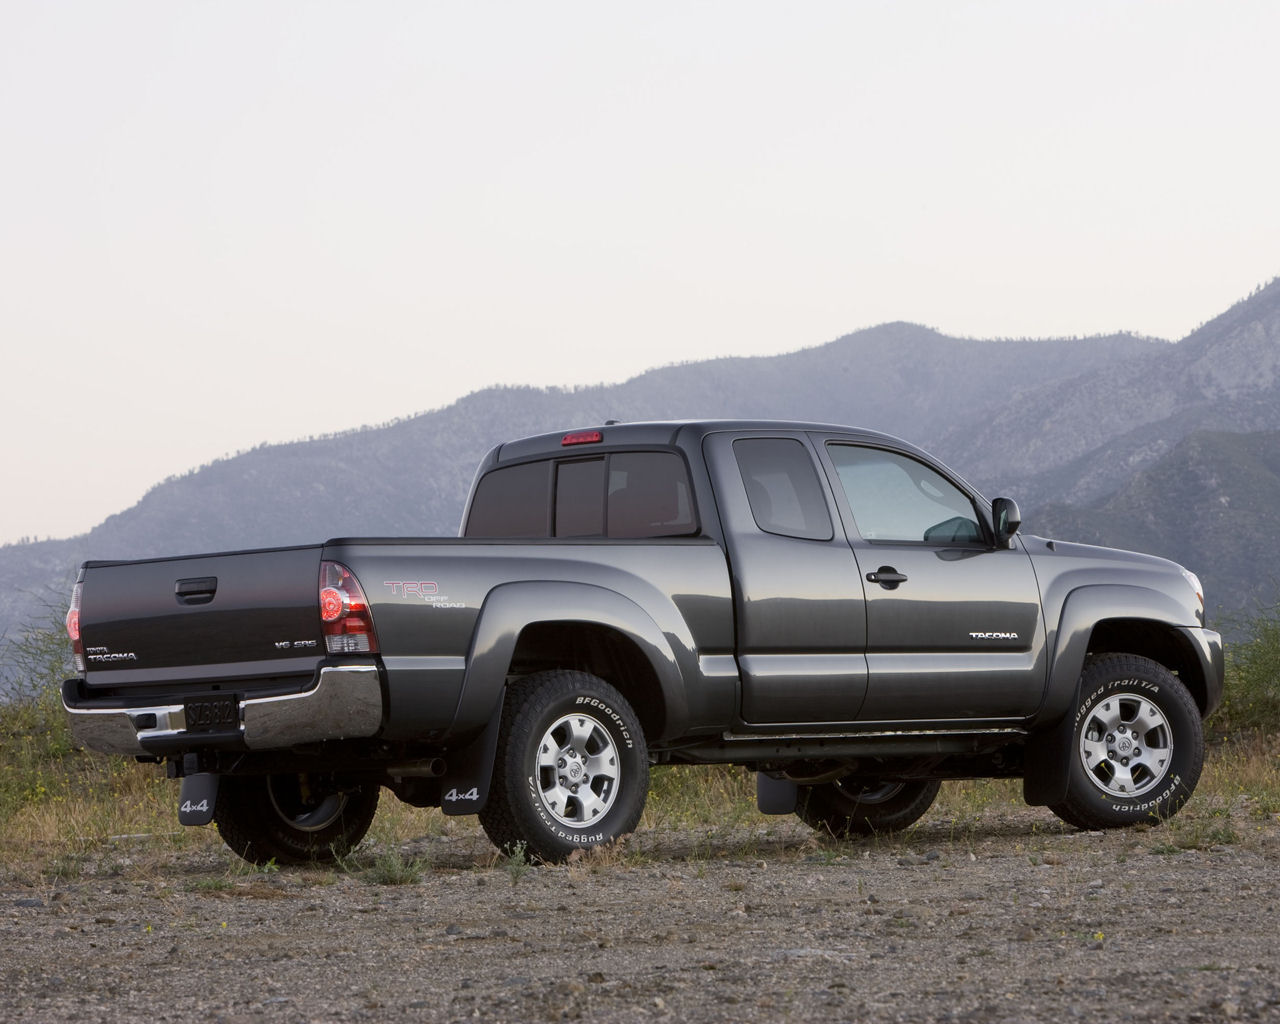 on the Toyota Tacoma wallpaper below and choose Set as Background 1280x1024